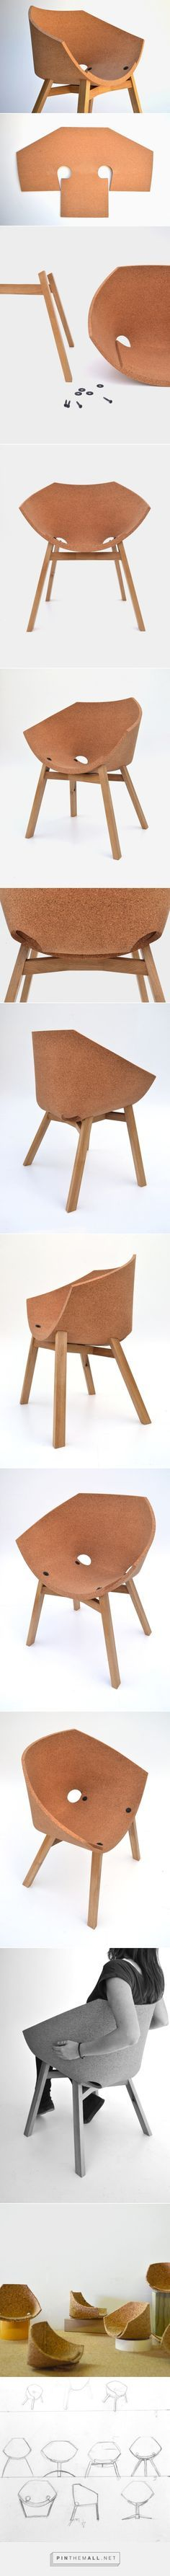 Corkigami Chair by Carlos Ortega Design - Design Milk - created via http://pinthemall.net